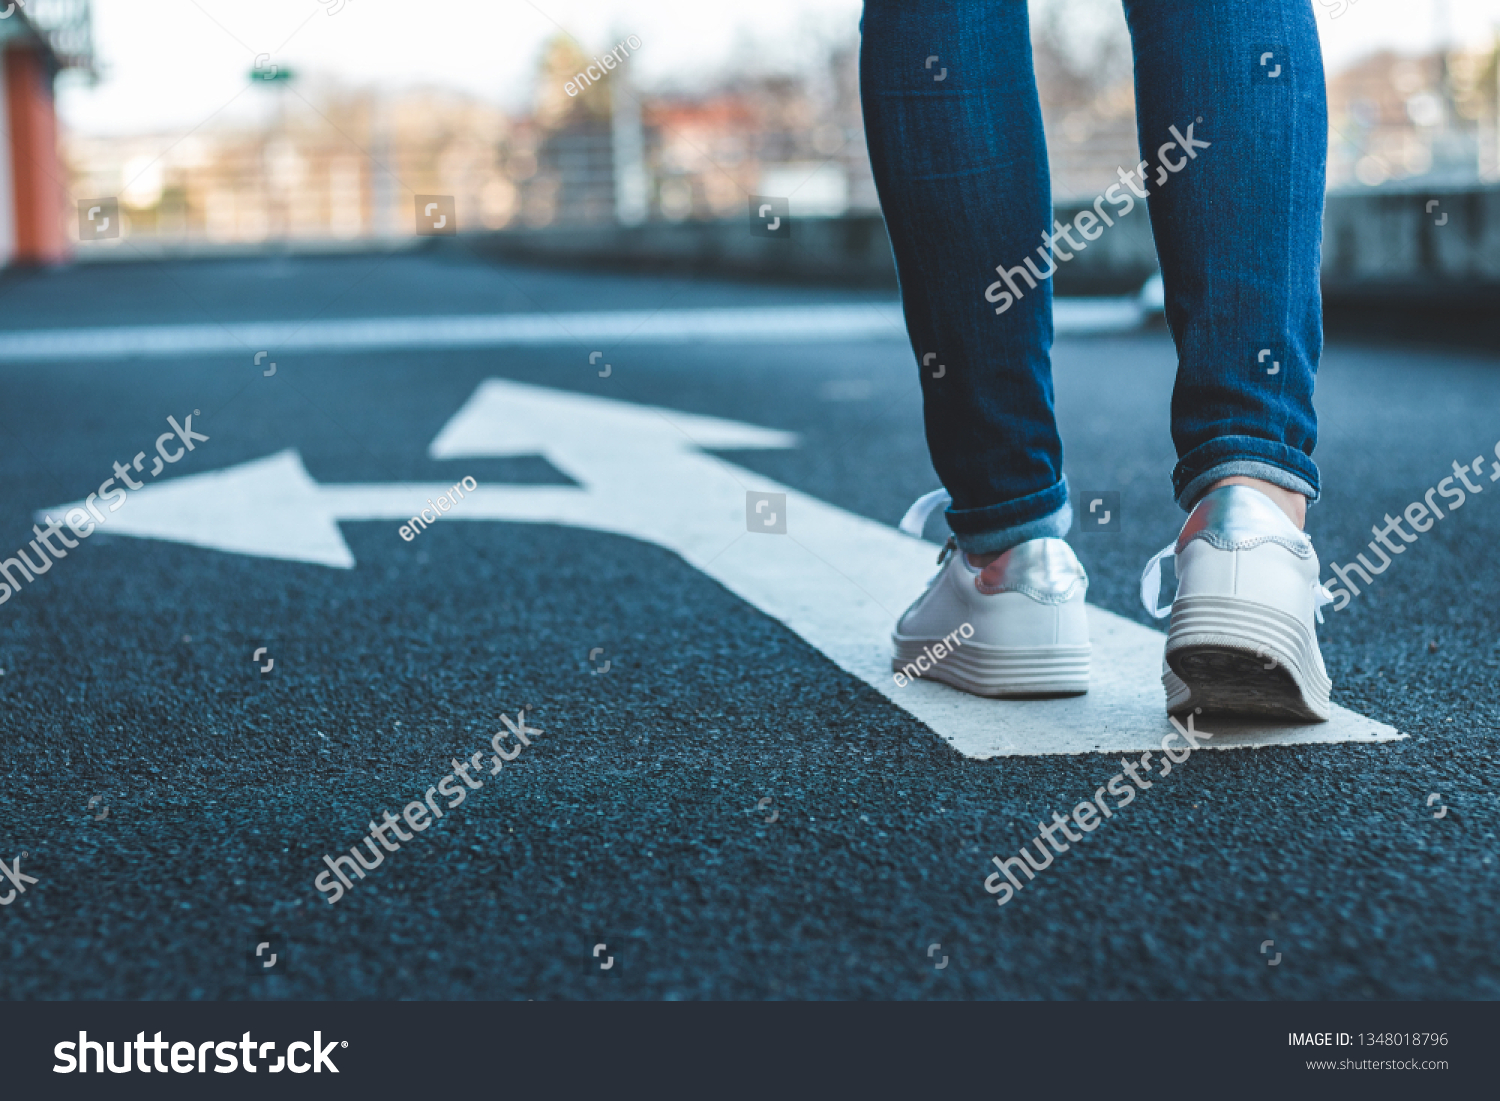 Make decision which way to go. Walking on directional sign on asphalt road. Female legs wearing jeans and white sneakers. #1348018796